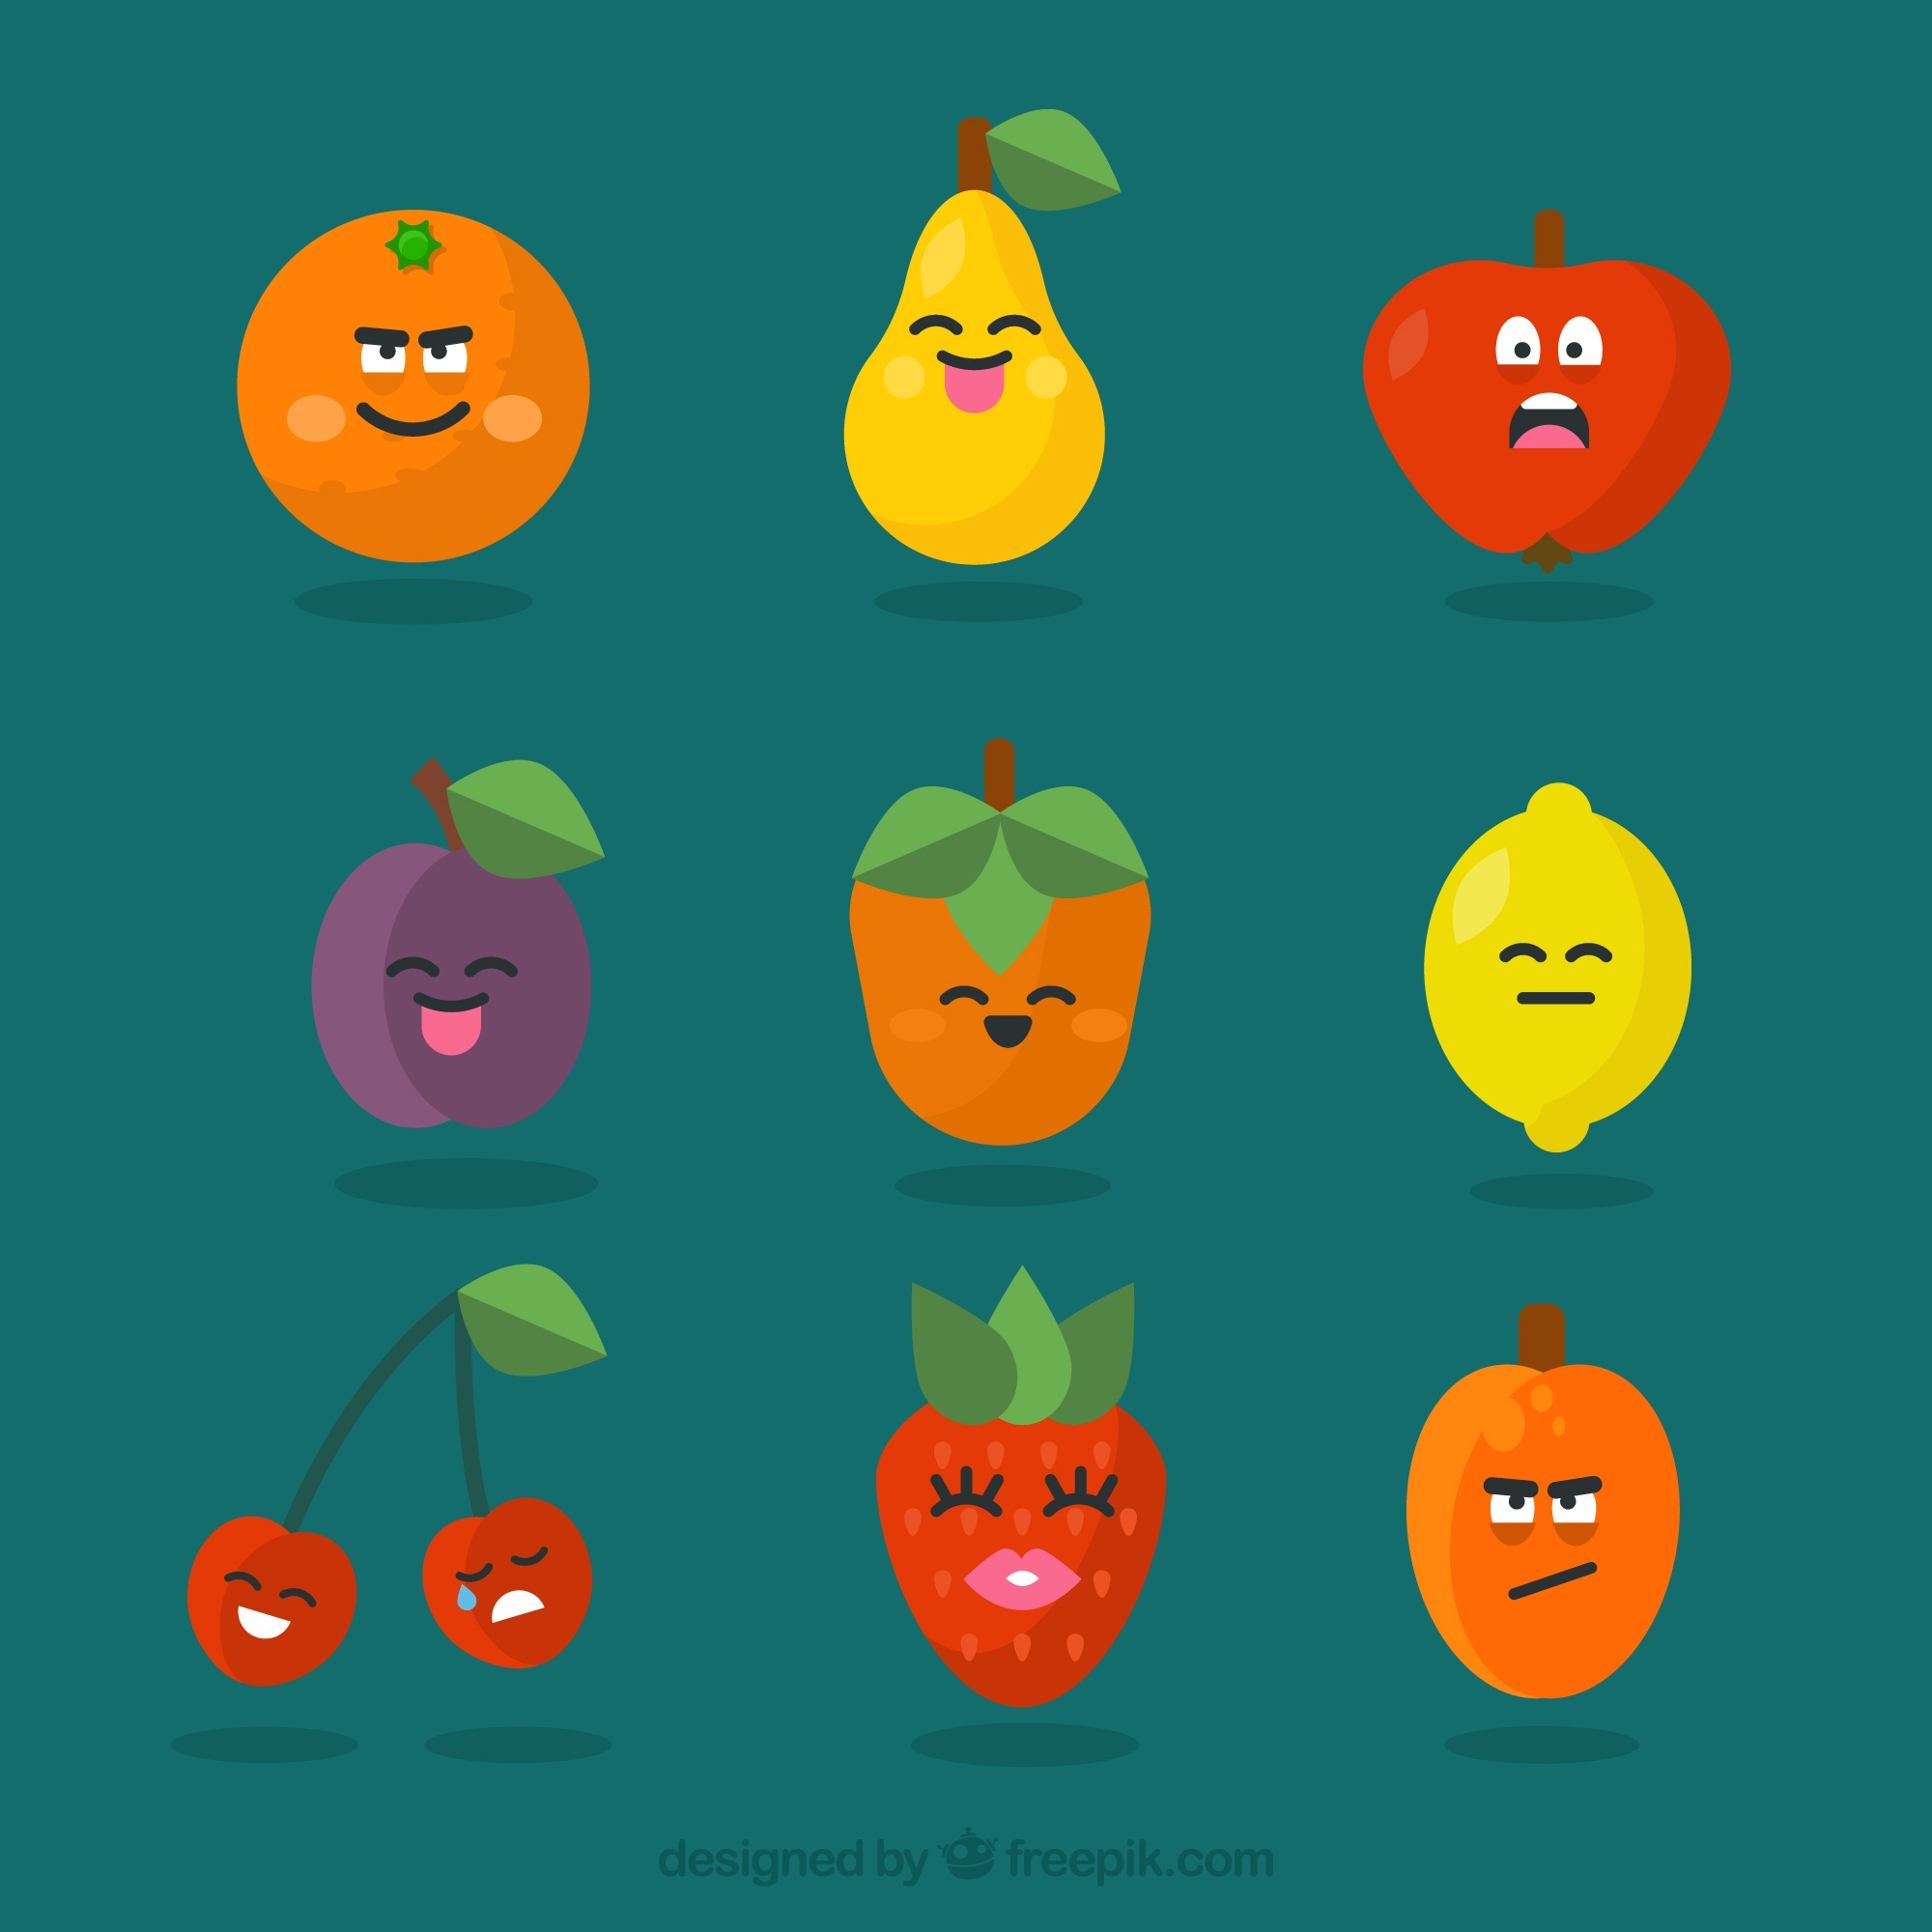 Various fruit characters with facial expressions